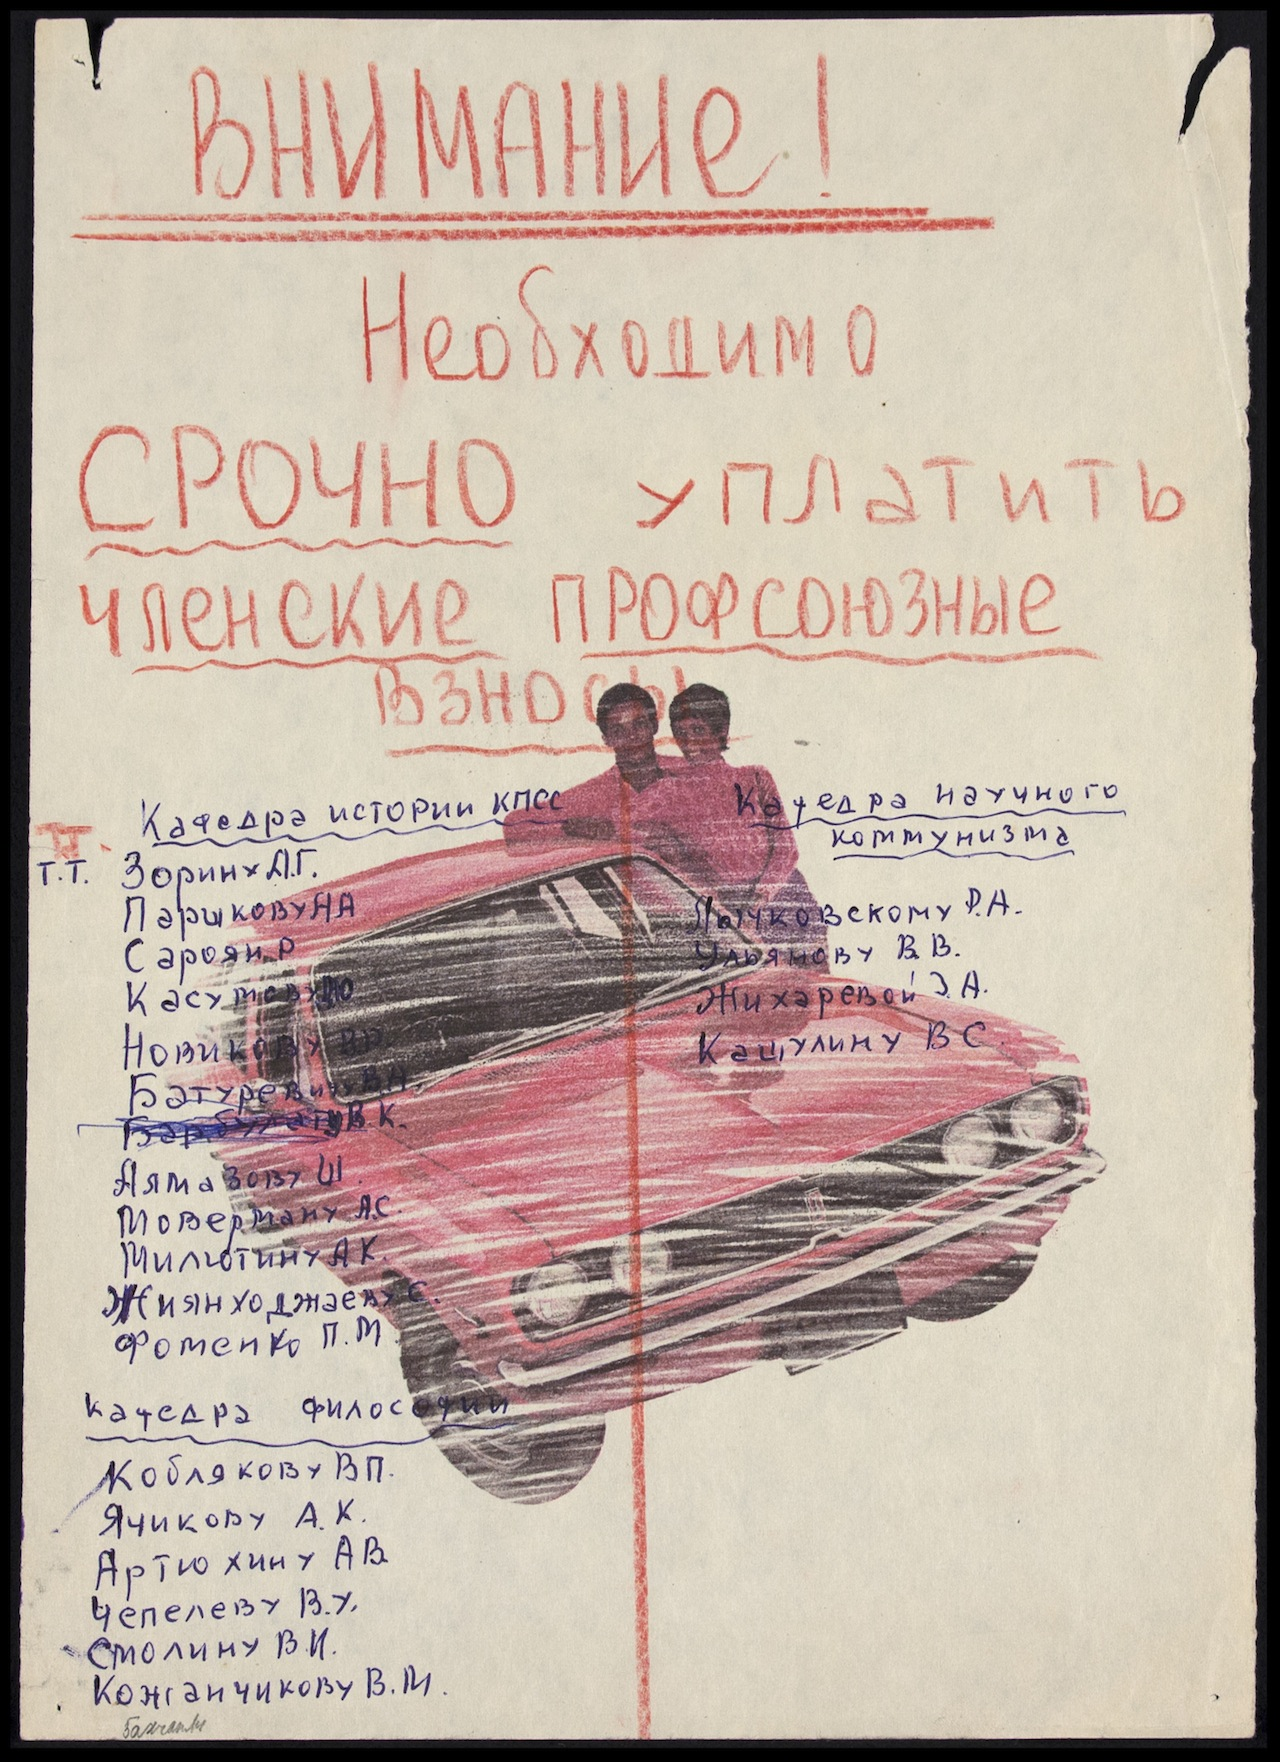 """Vagrich Bakhchanyan, """"Attention!"""" (1972–73), transfer process, colored pencil, and ink on paper, 30 x 21.2 cm (image courtesy of Zimmerli Art Museum)"""